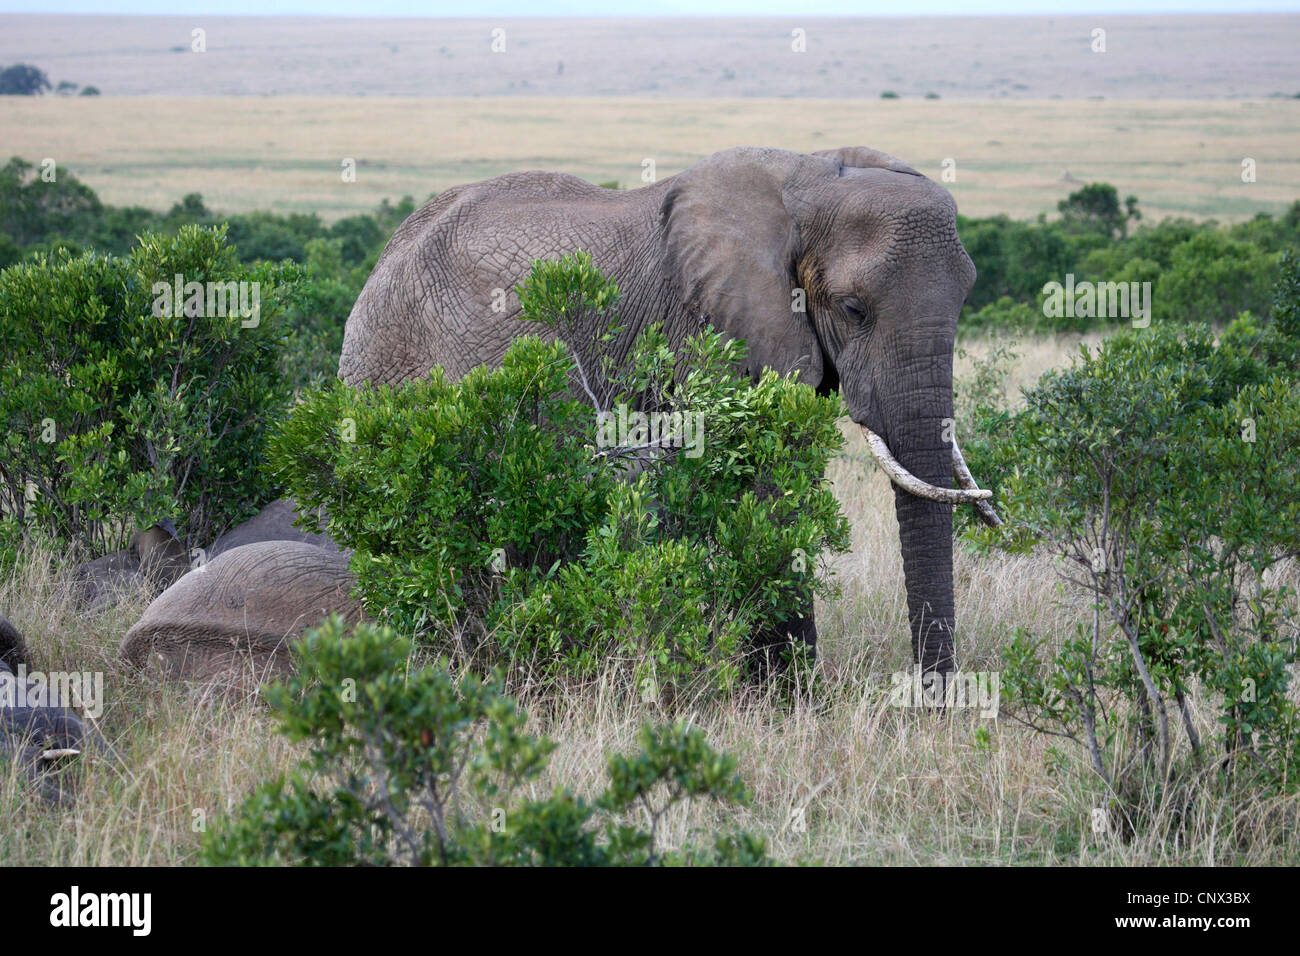 African elephant (Loxodonta africana), herd between bushes in the savannah, Kenya, Masai Mara National Park Stock Photo